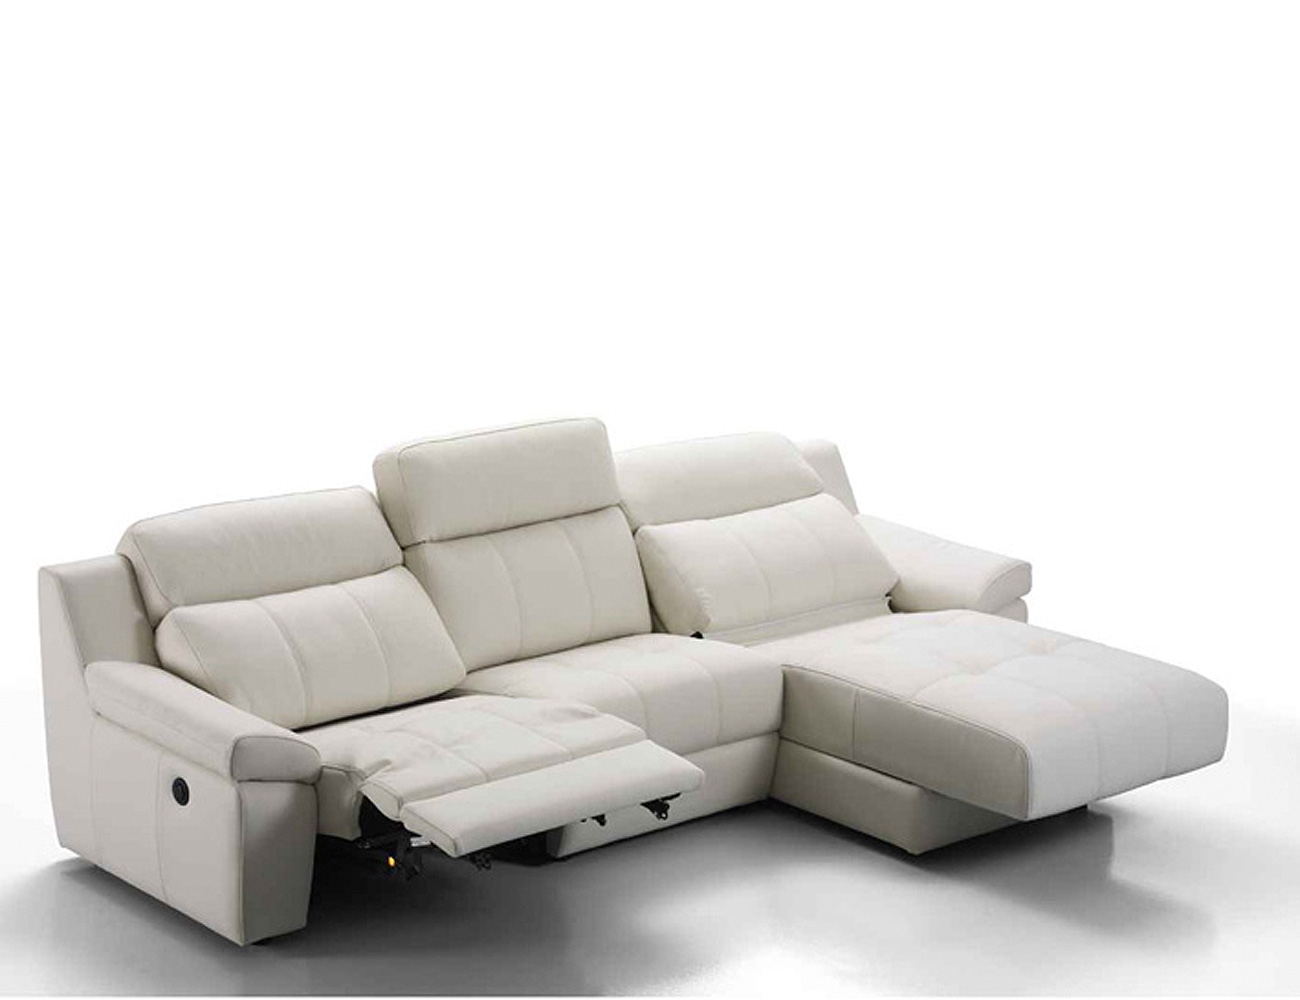 Sof chaiselongue en piel espesorada con relax el ctrico for Sofa piel chaise longue